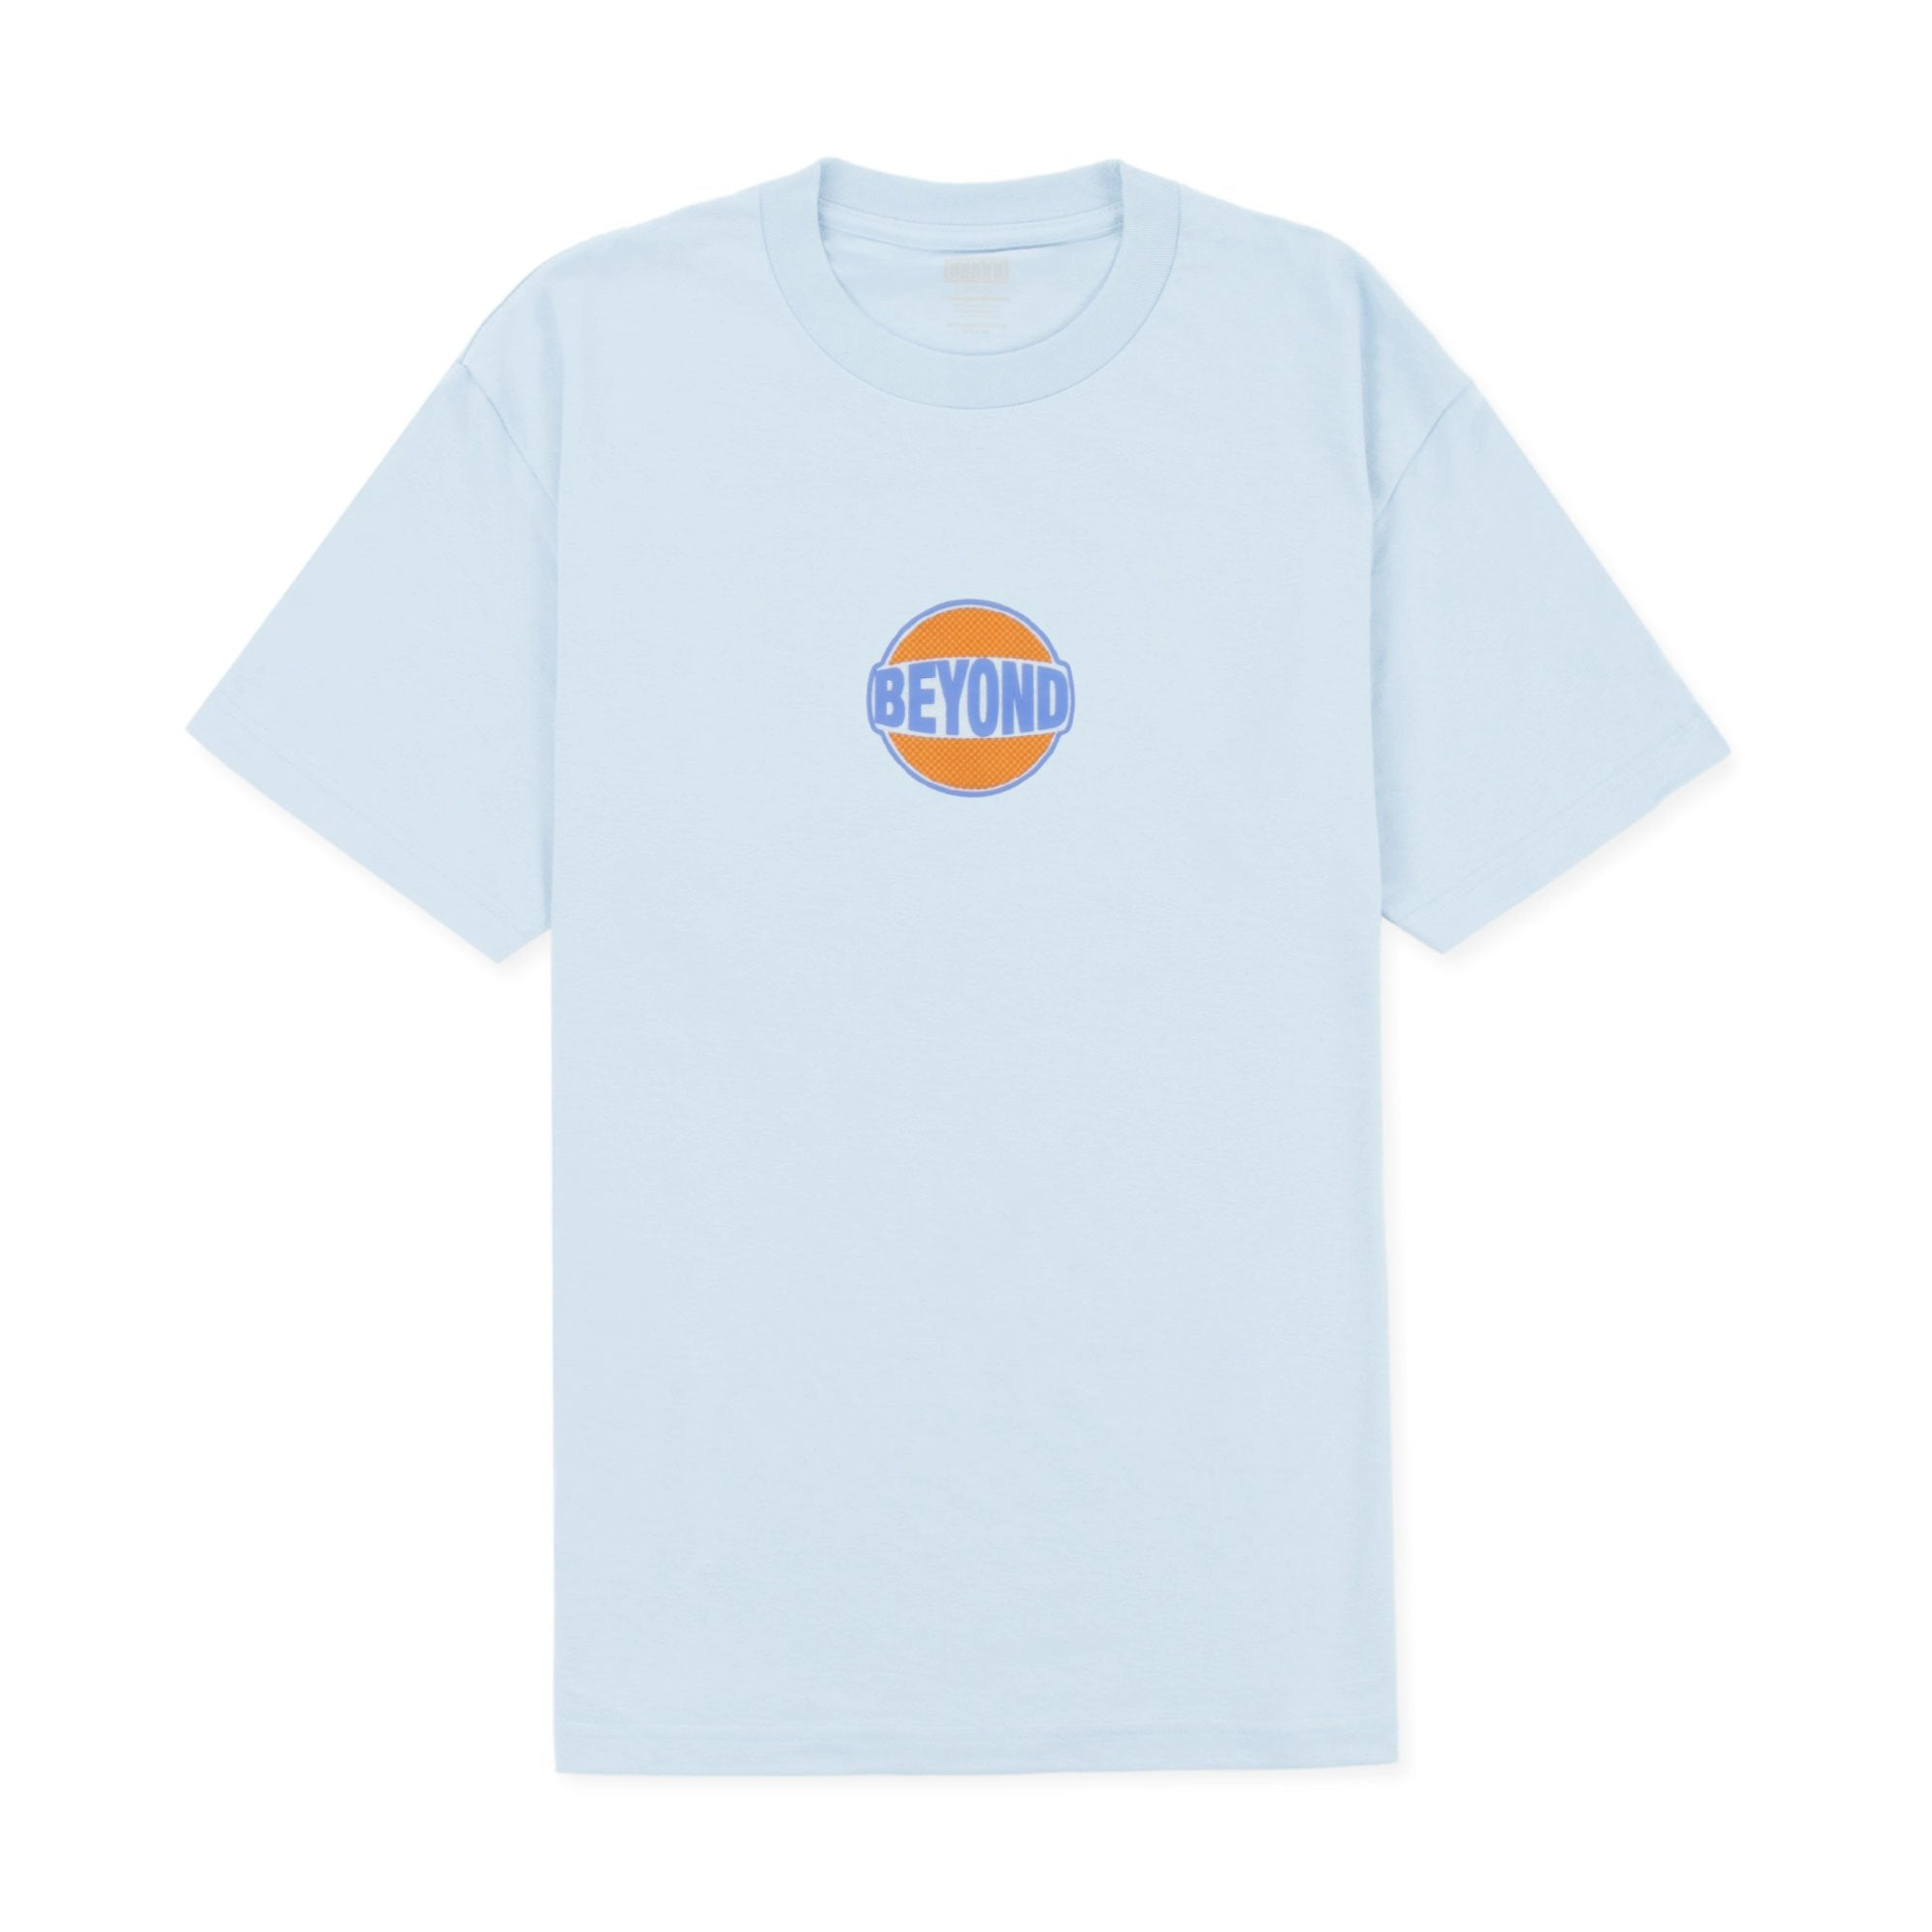 Beyond Oiler Colour Tee Product Photo #1